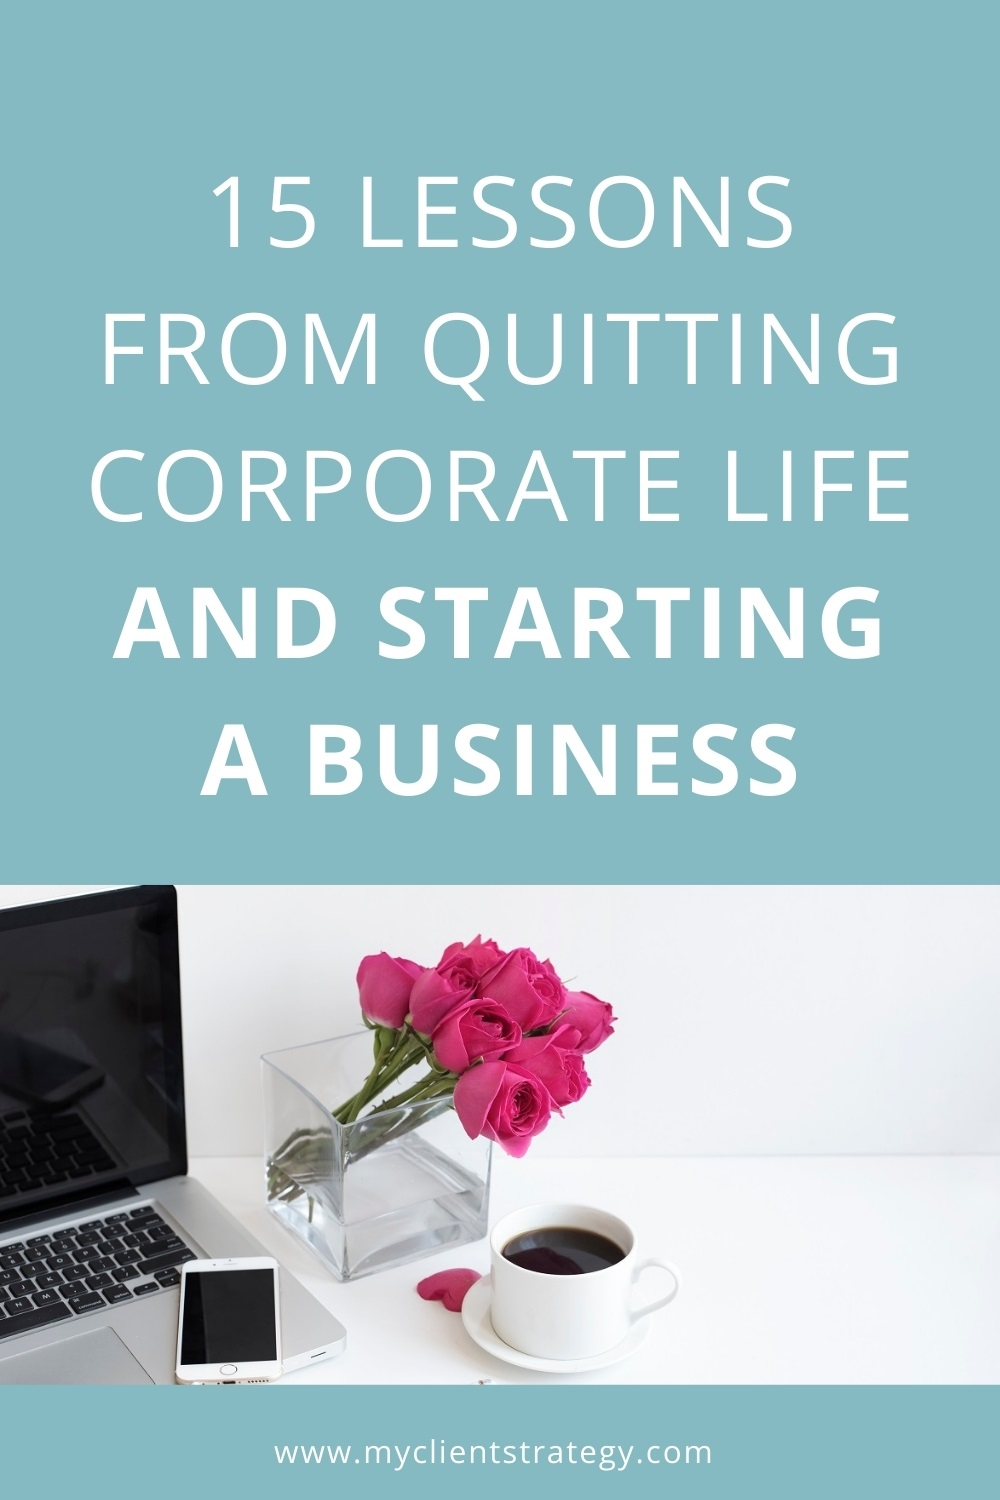 lessons from quitting corporate life and starting a business